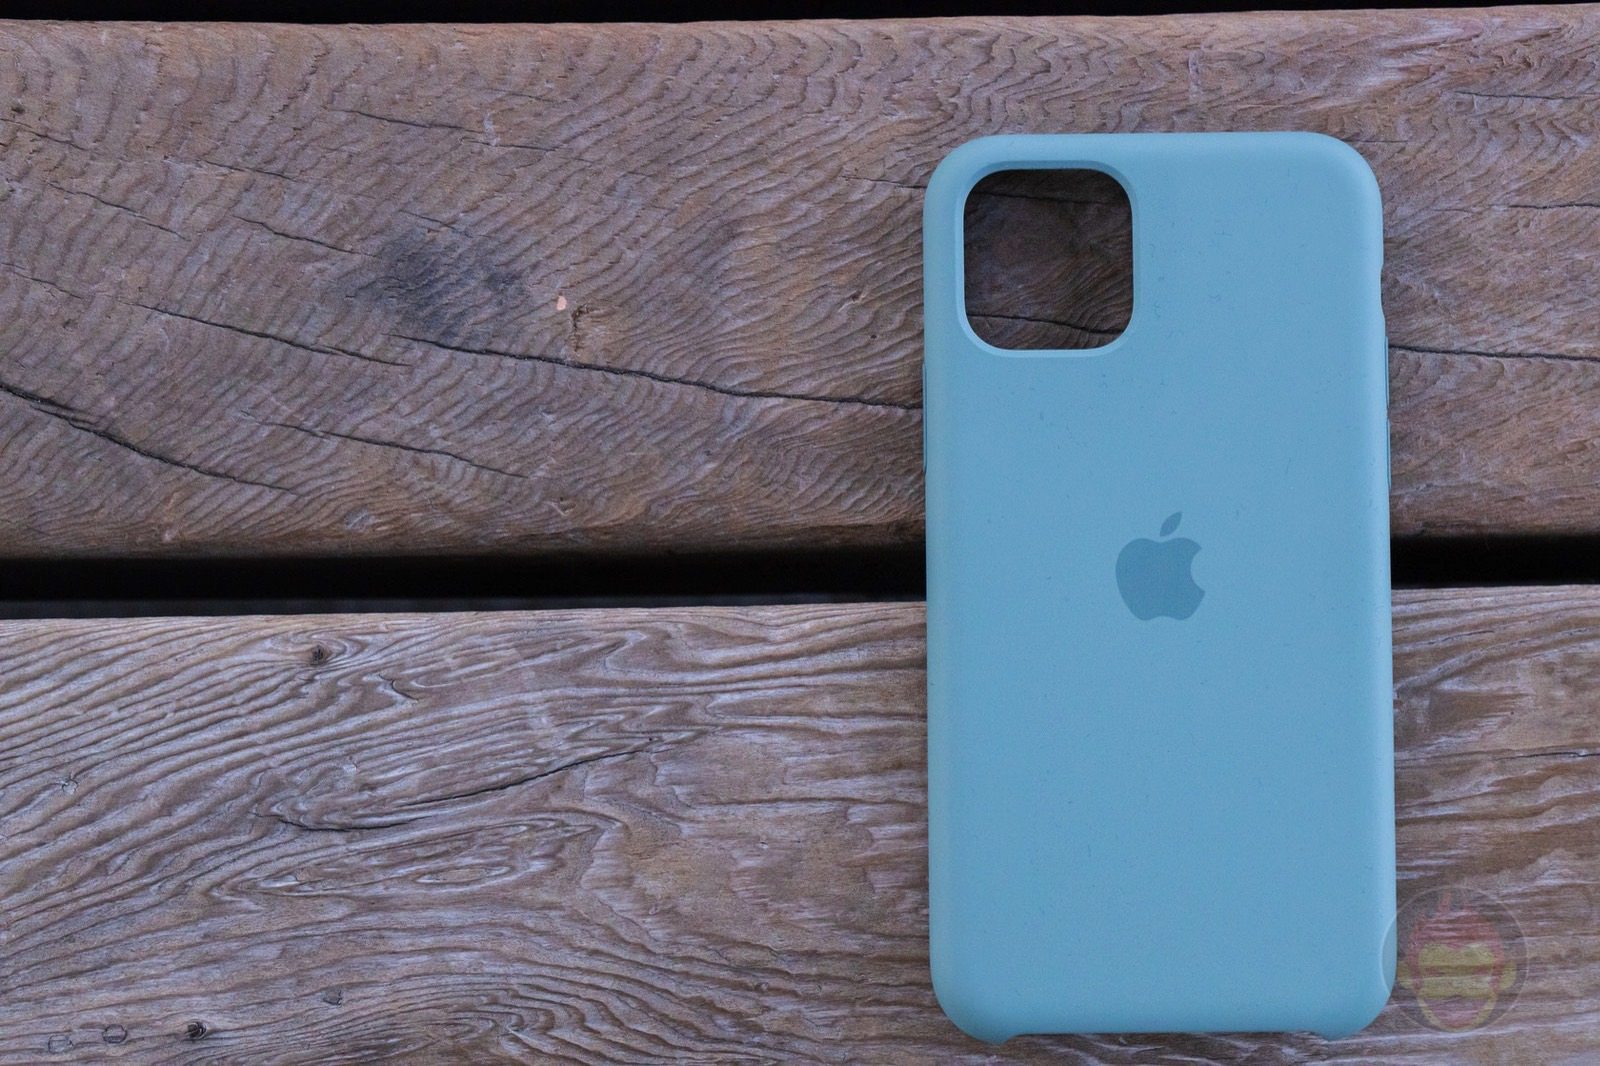 Apple Silicone Case for iPhone11Pro Review 01